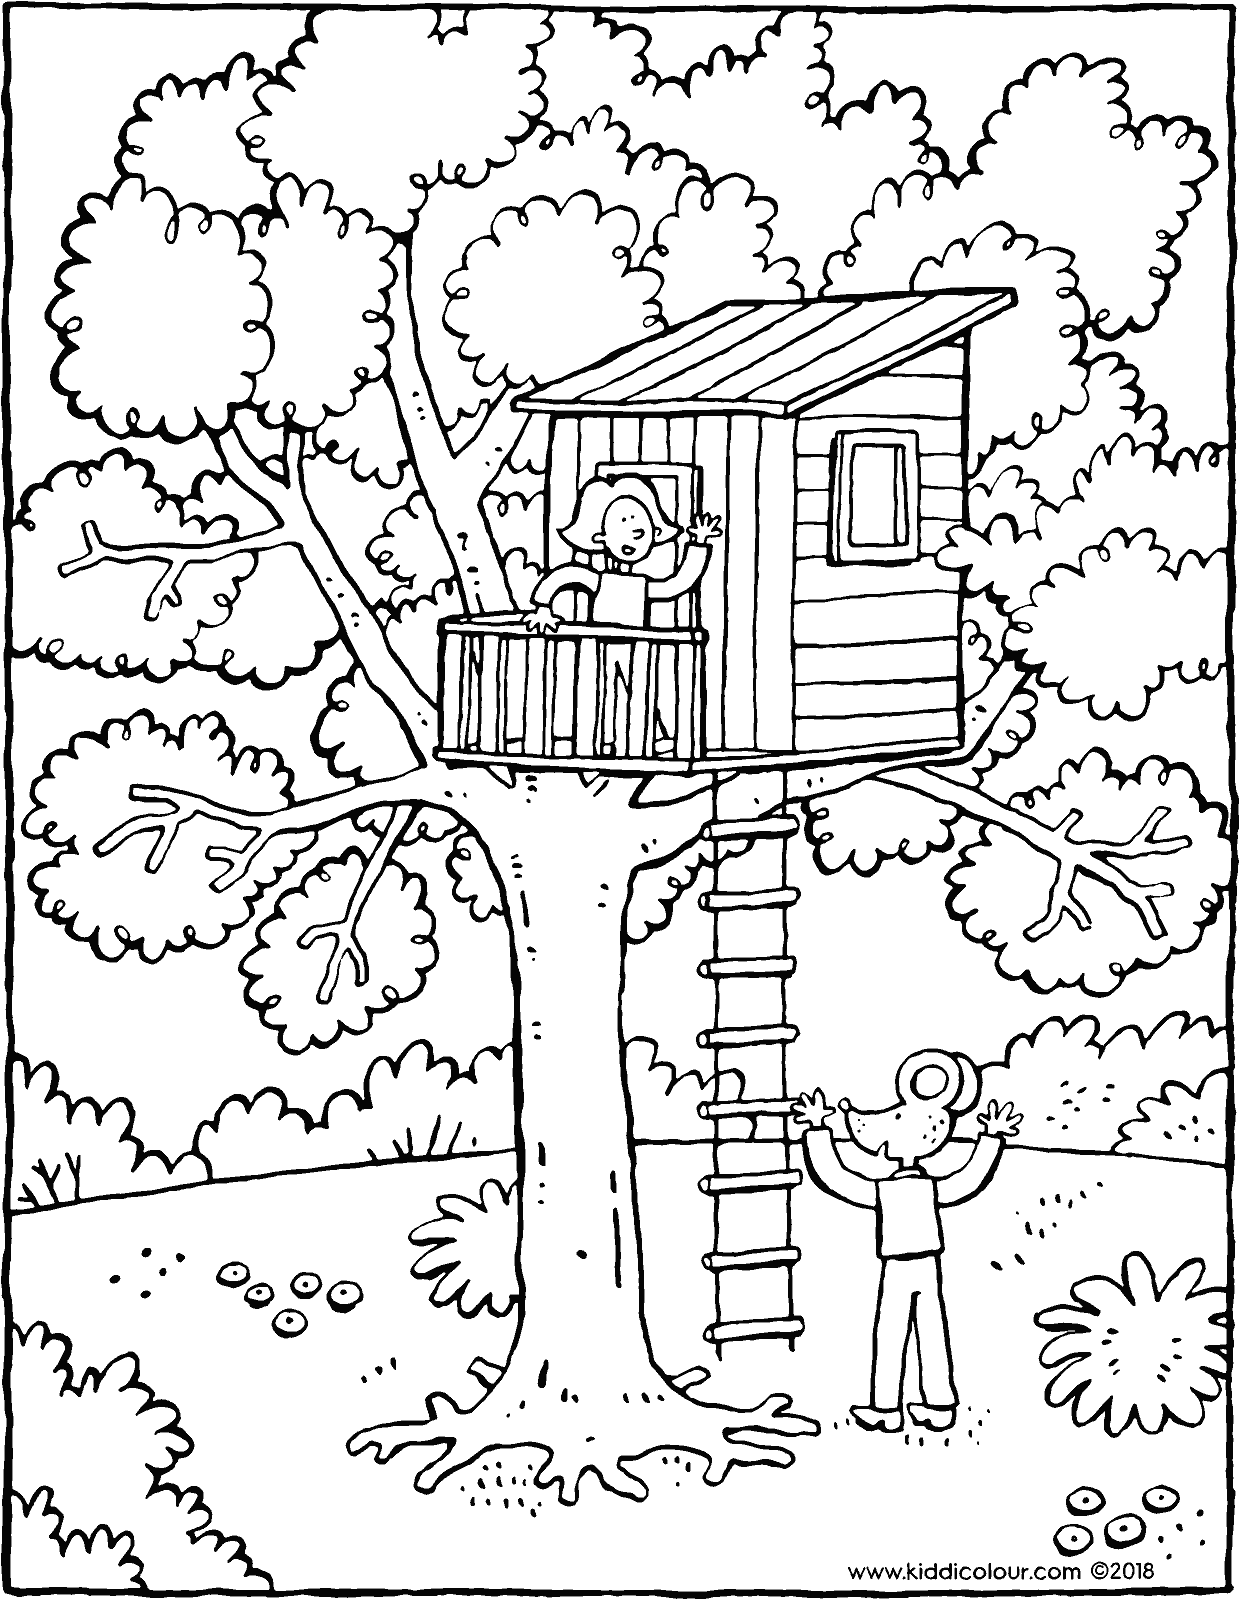 Emma and Thomas's tree house colouring page drawing picture 01V